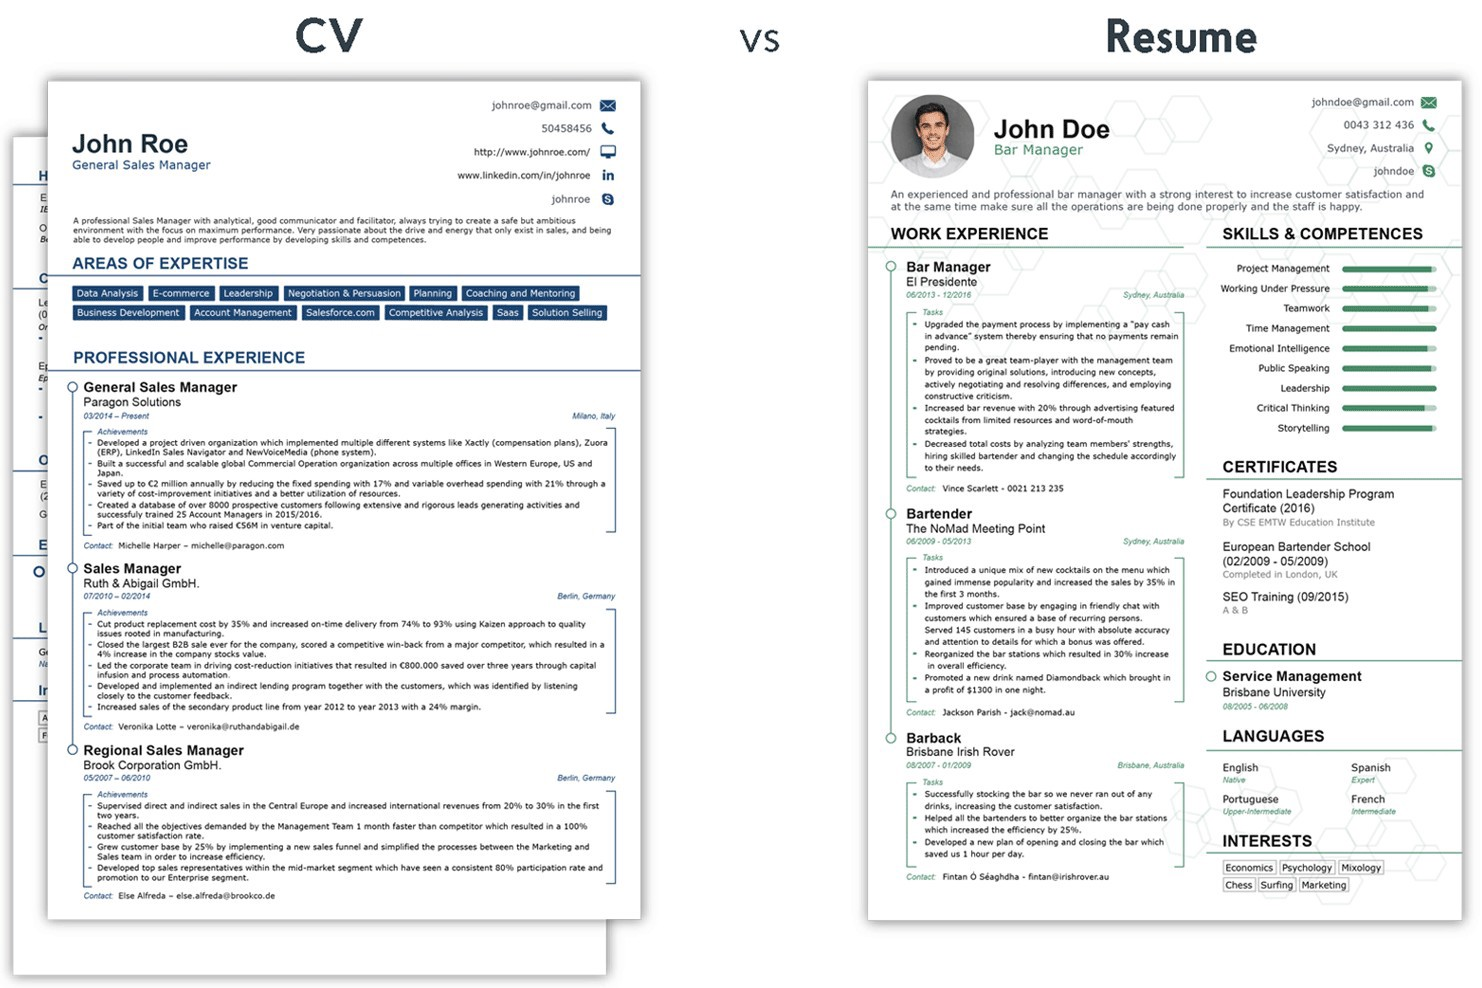 cv vs resume is the difference between and by farhan mahesar medium curriculum vitae Resume Curriculum Vitae Vs Resume